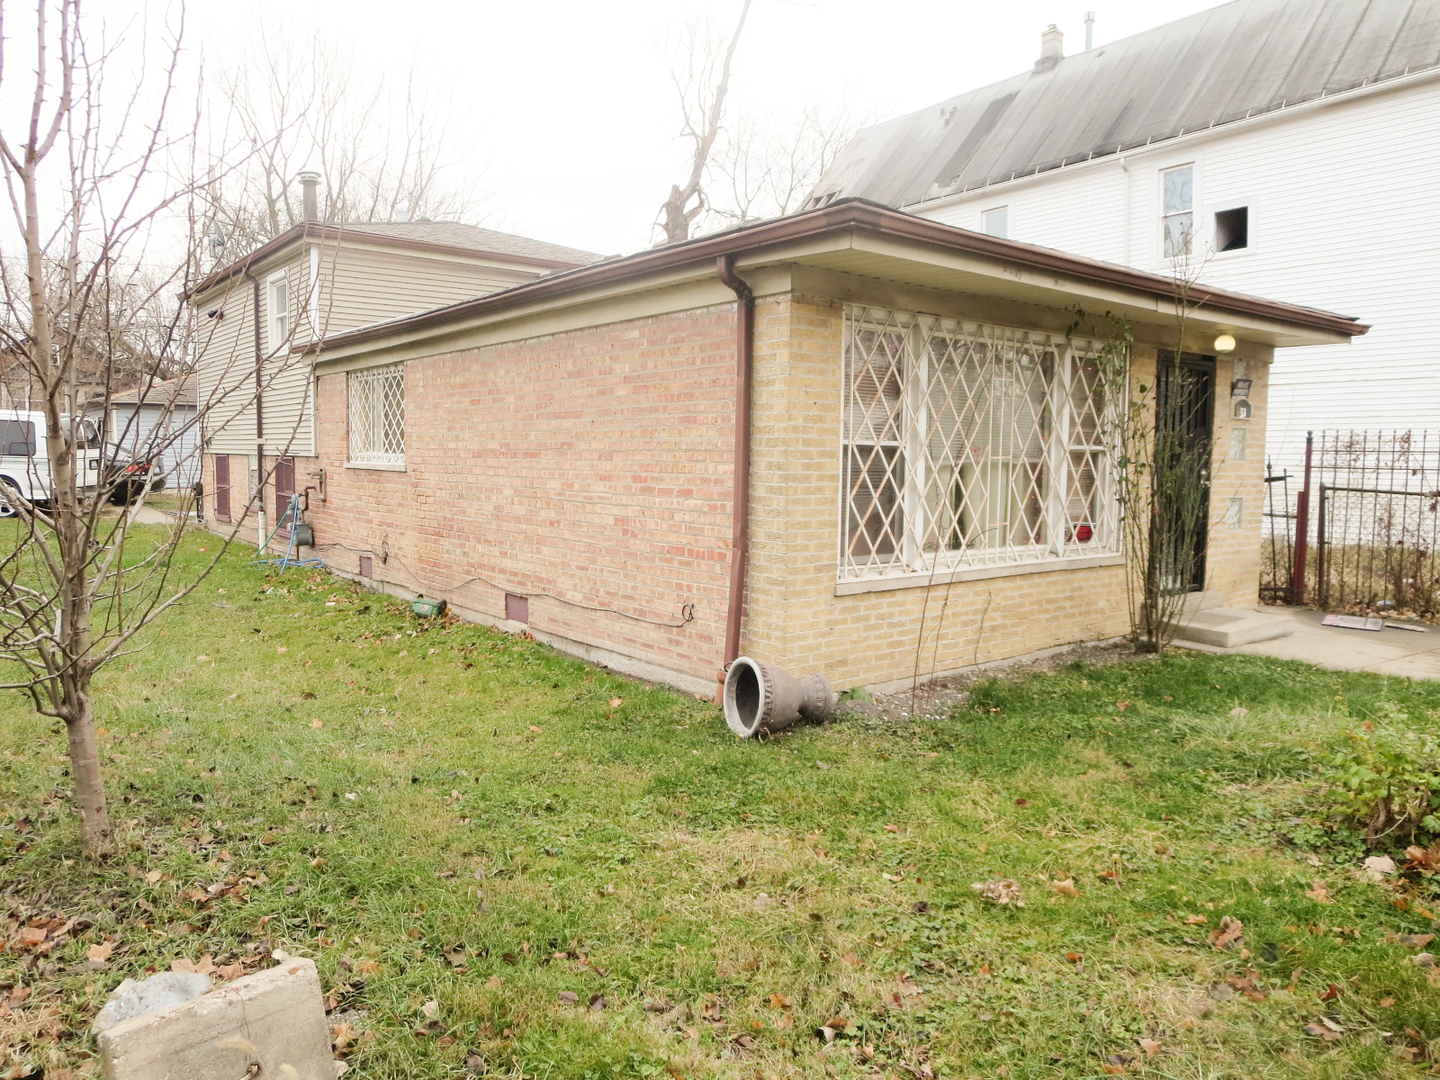 Great investment on this spacious brick split level in upcoming neighborhood. Close and collect rent right away.  Property was fully rehabbed in 2011 including tear off  roof ( house and garage), hardwood floors, furnace and water heater, security fence, kitchen cabinets etc. Currently being rented.